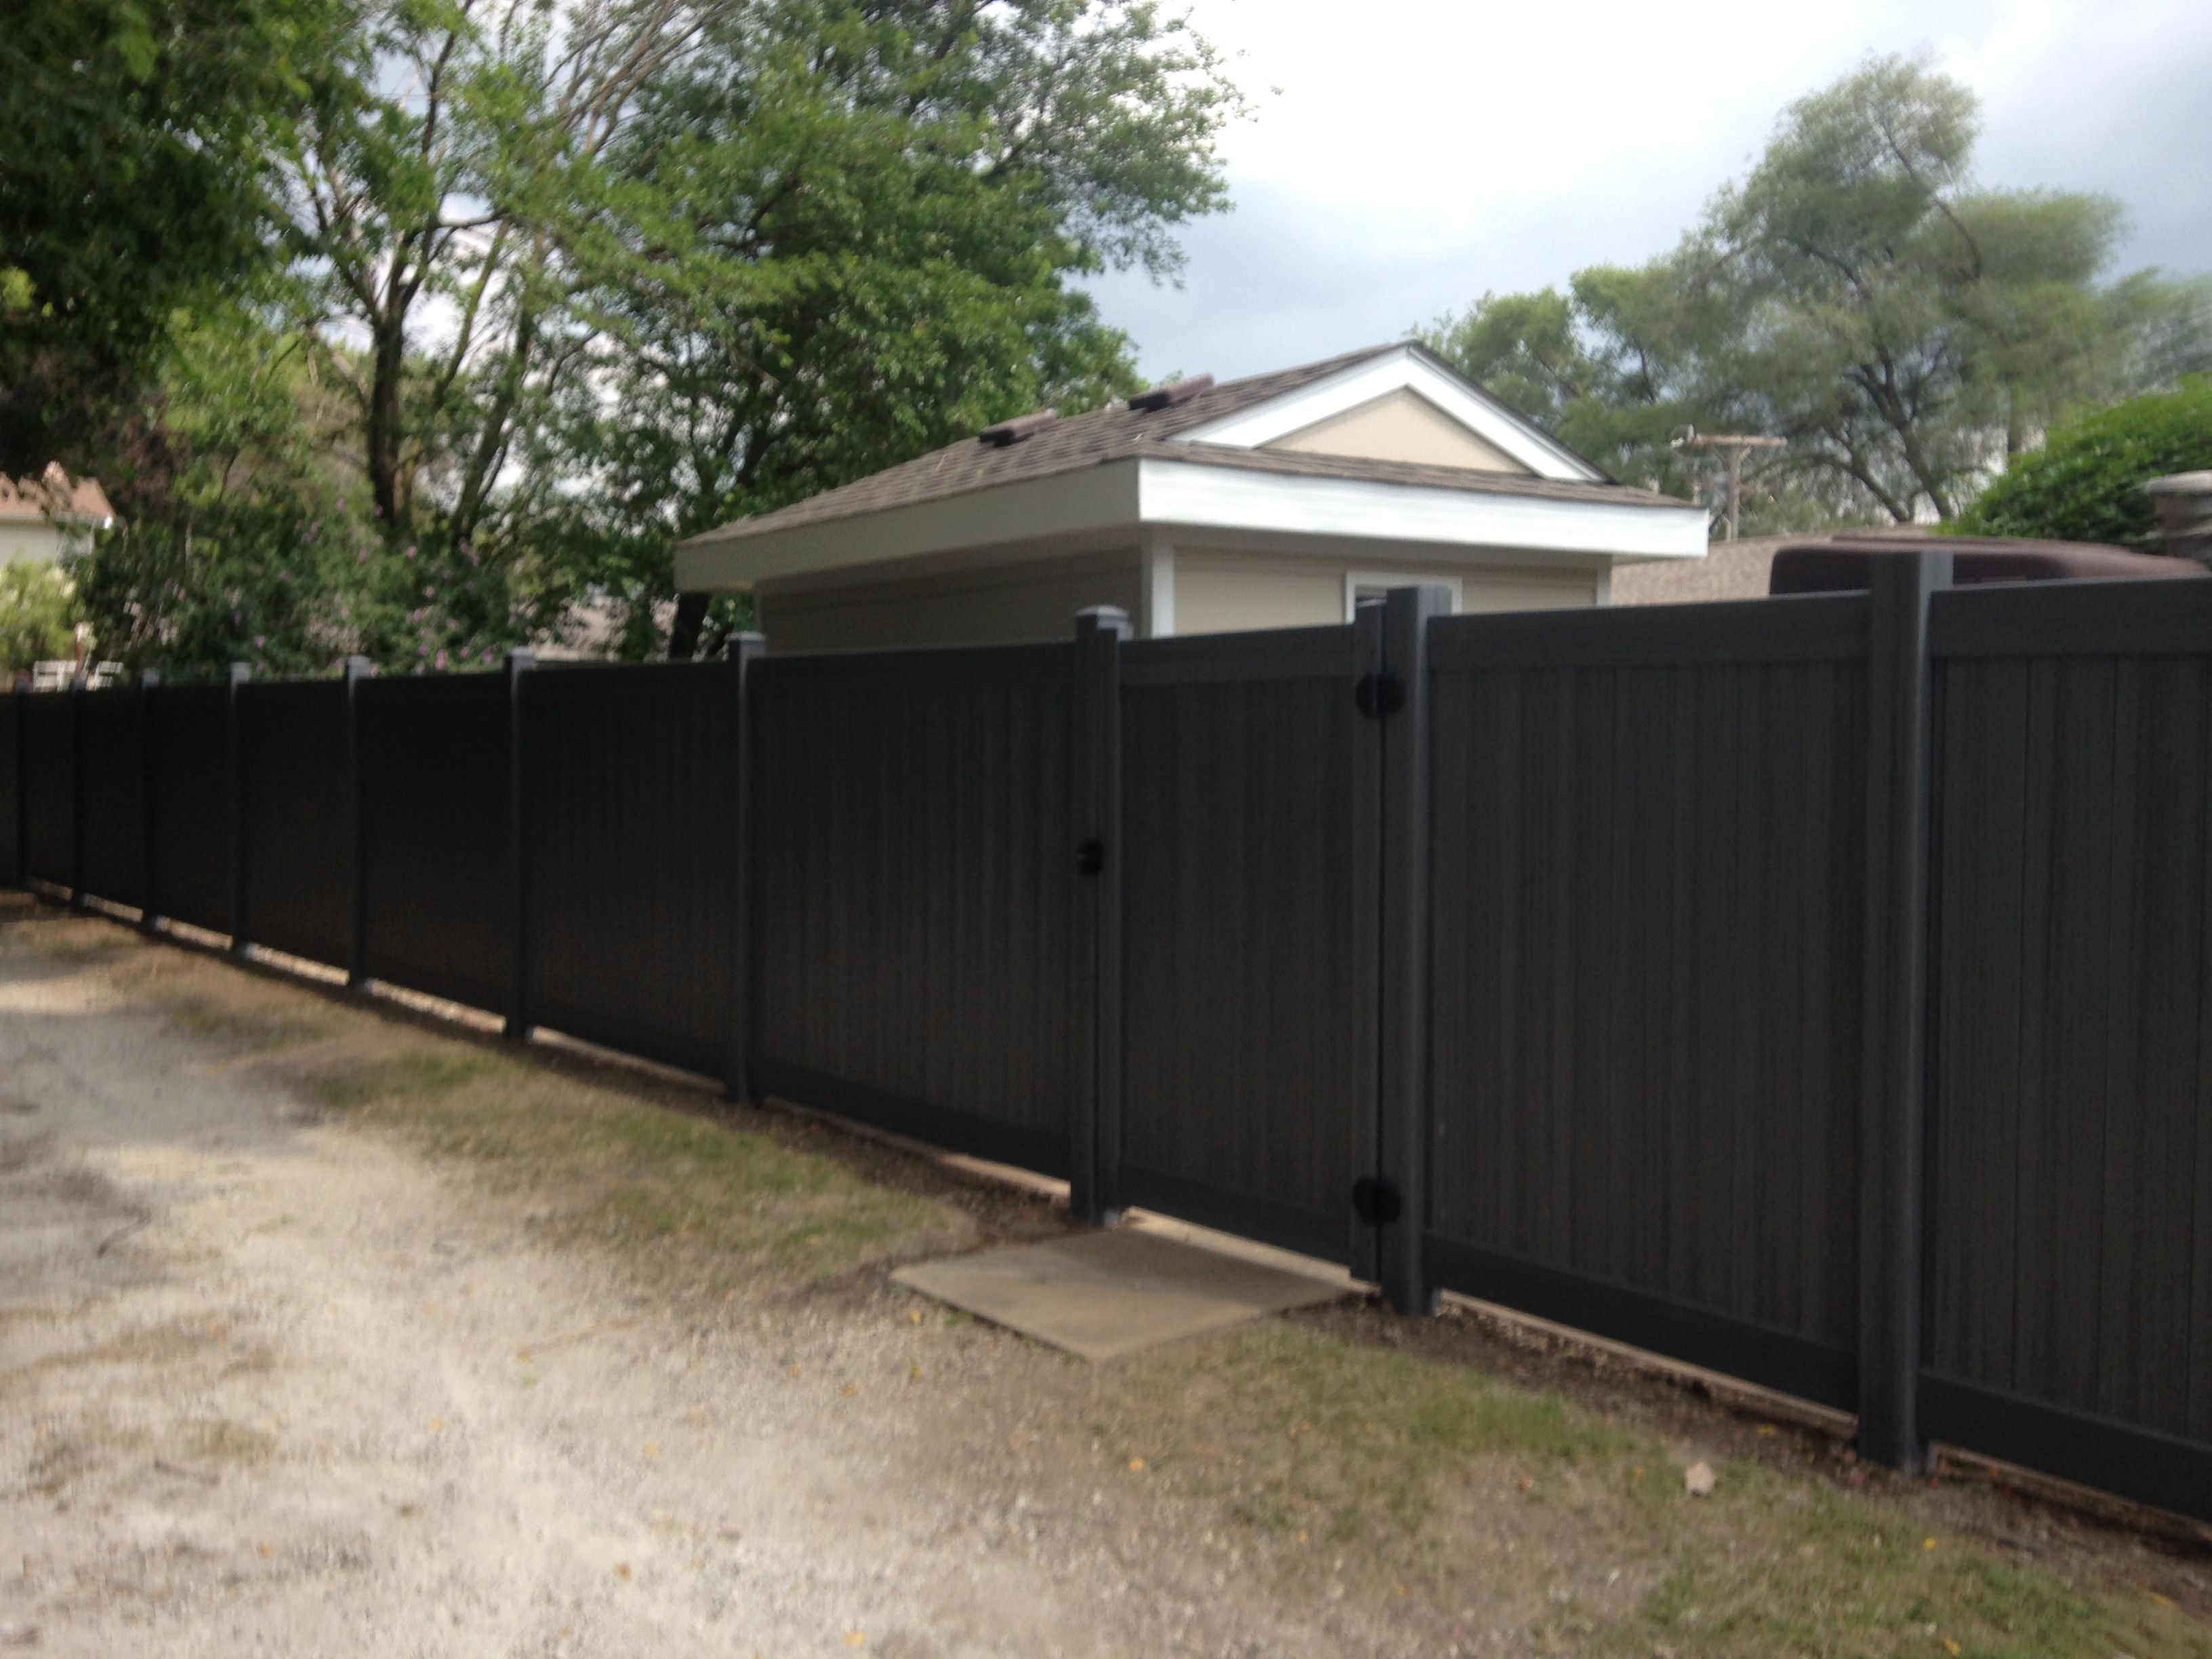 Barn wood grain gothic composite fence panel wpc fencing marchio fence company can install vinyl fences at your joliet il home or business learn more about this fencing material online or simply call us today baanklon Gallery